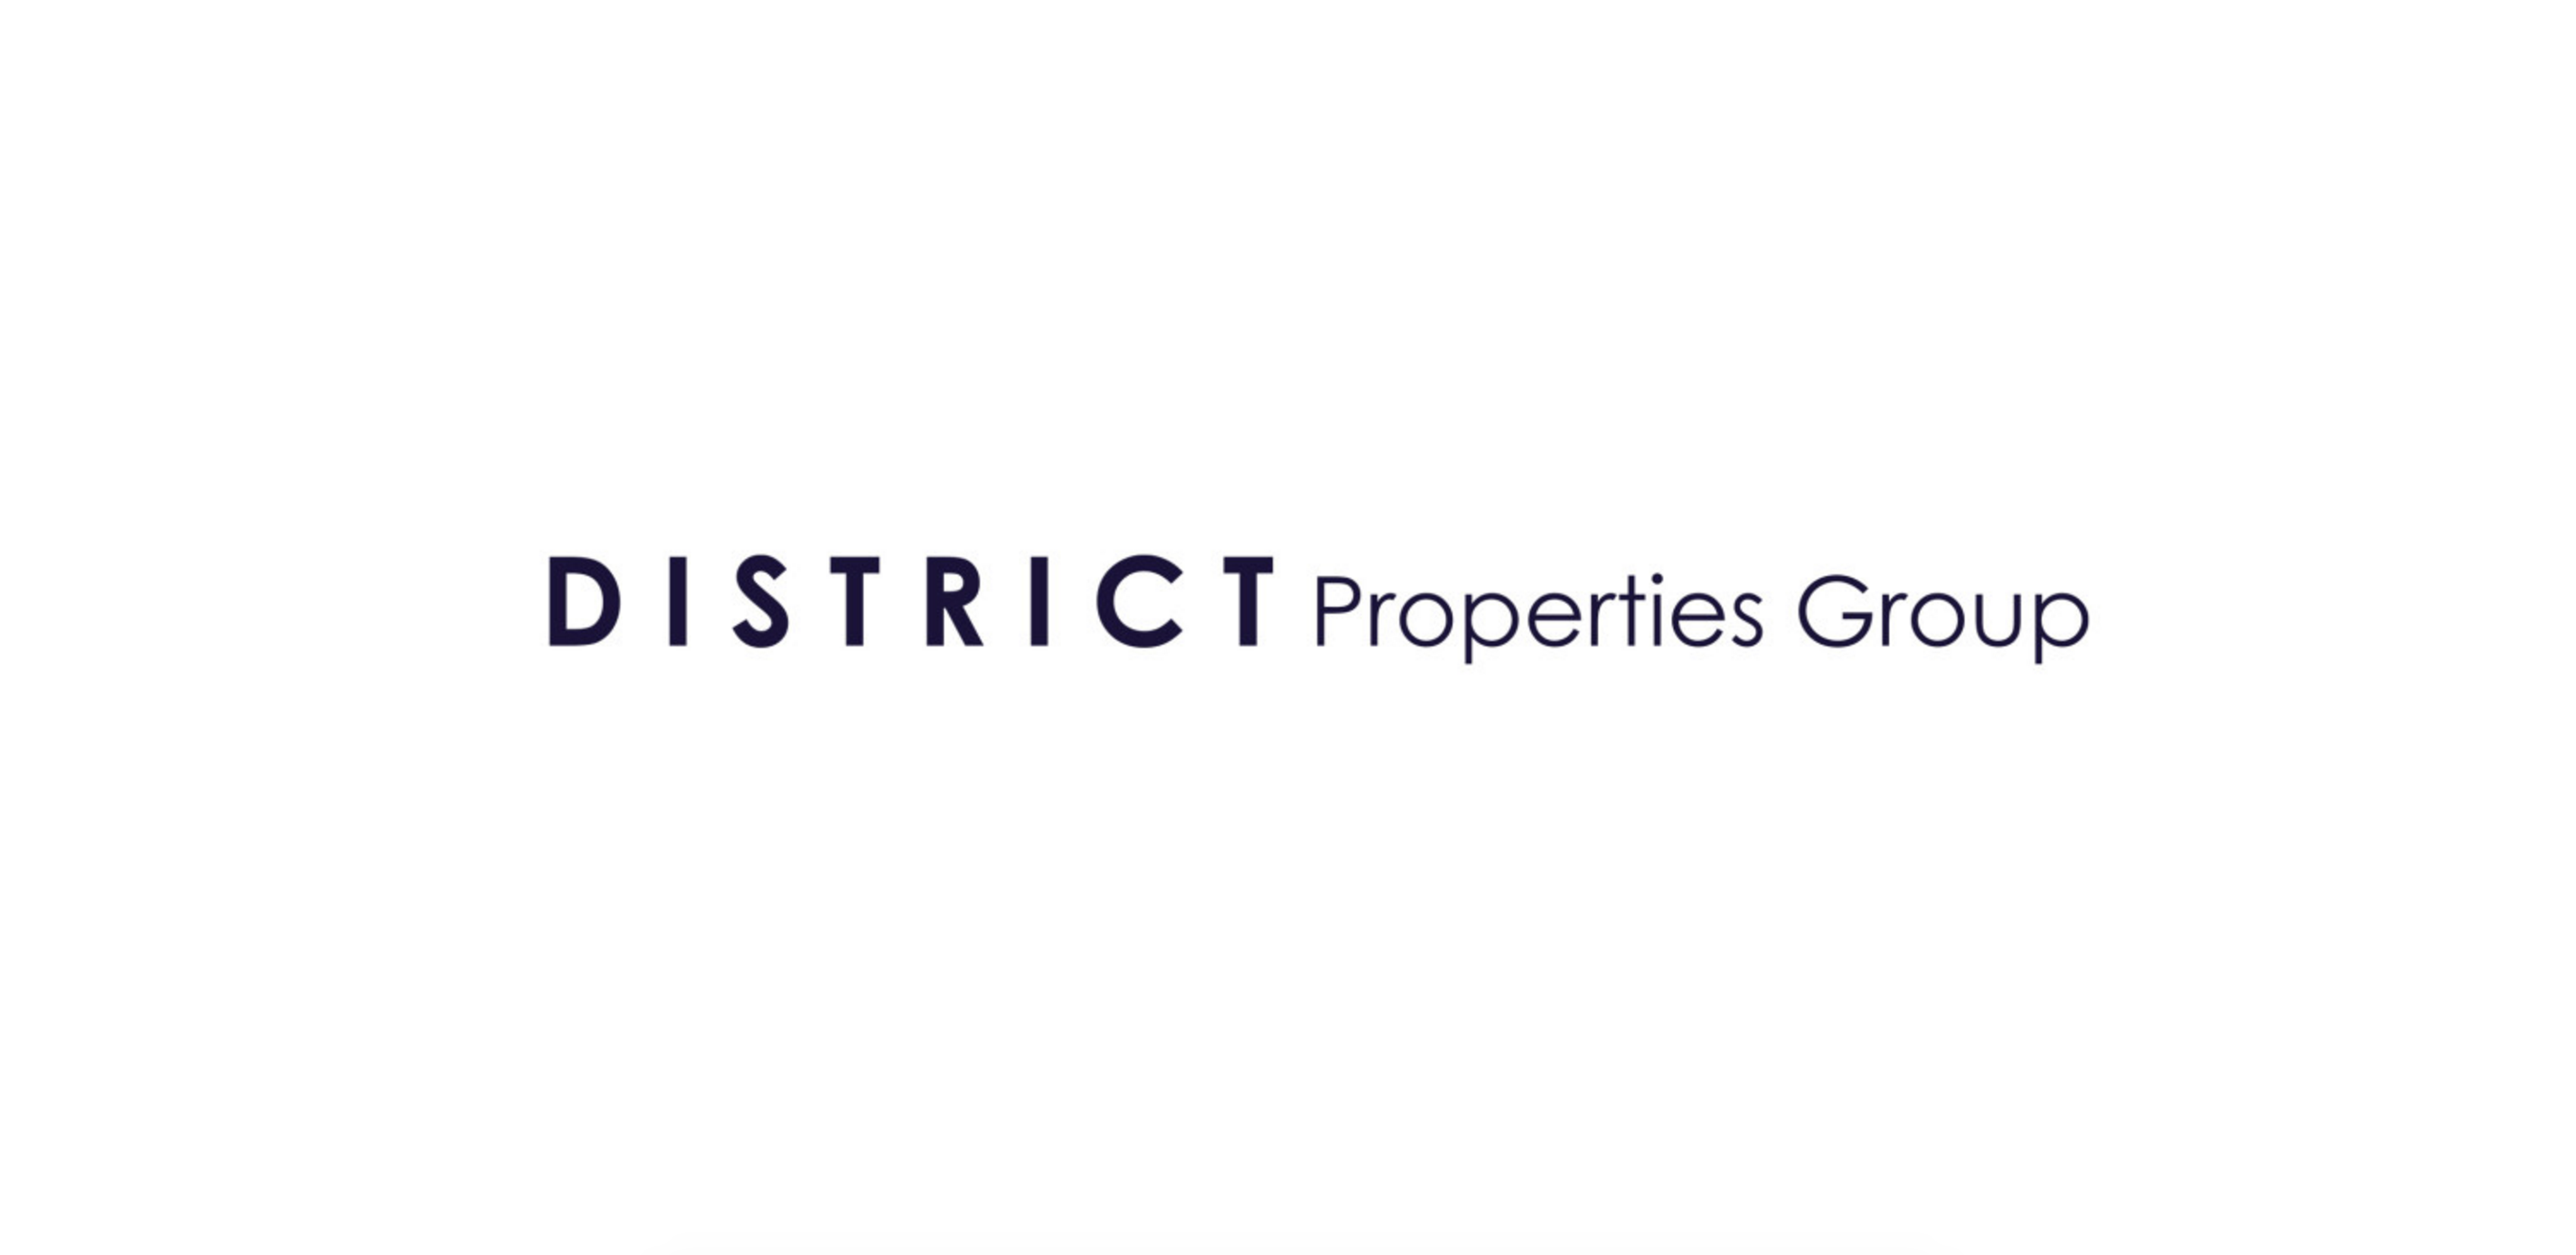 District Properties Group